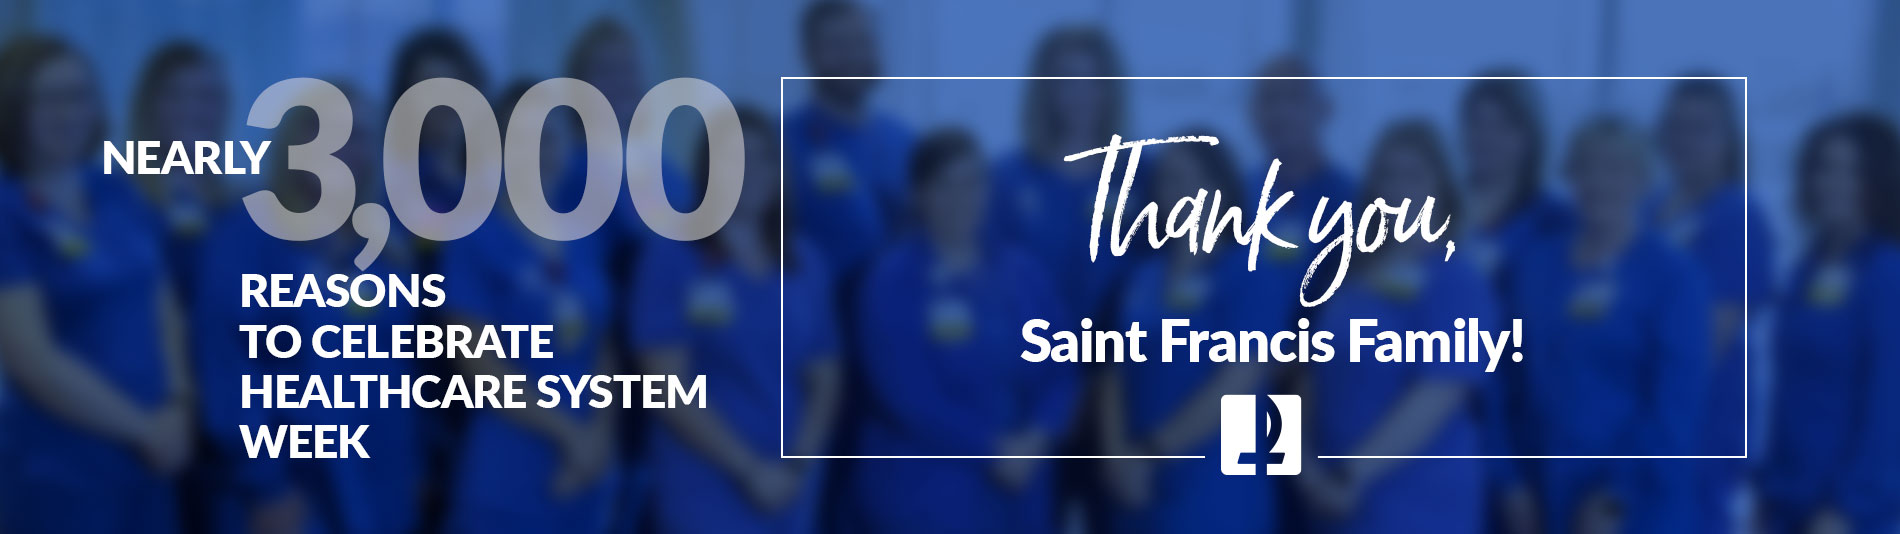 Nearly 3,000 reasons to celebrate healthcare system week. Thank you, Saint Francis family!